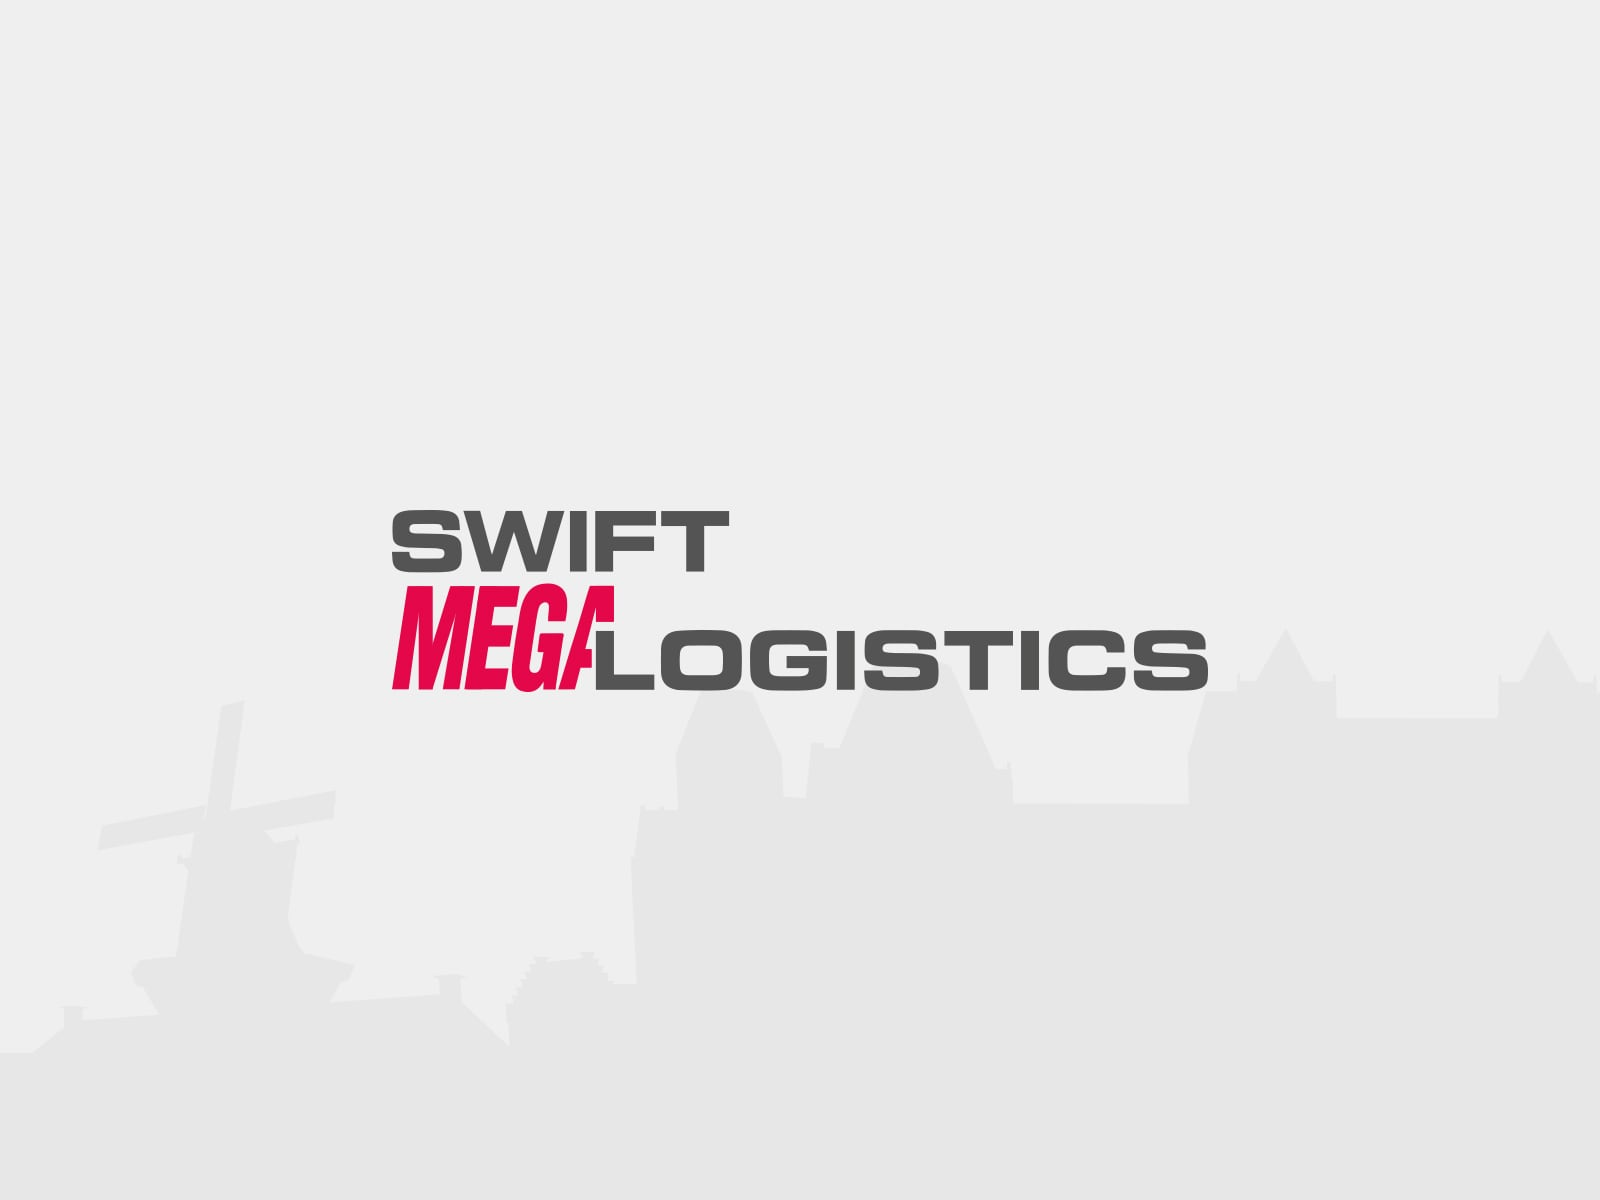 Swift Koeriers - Logodesign